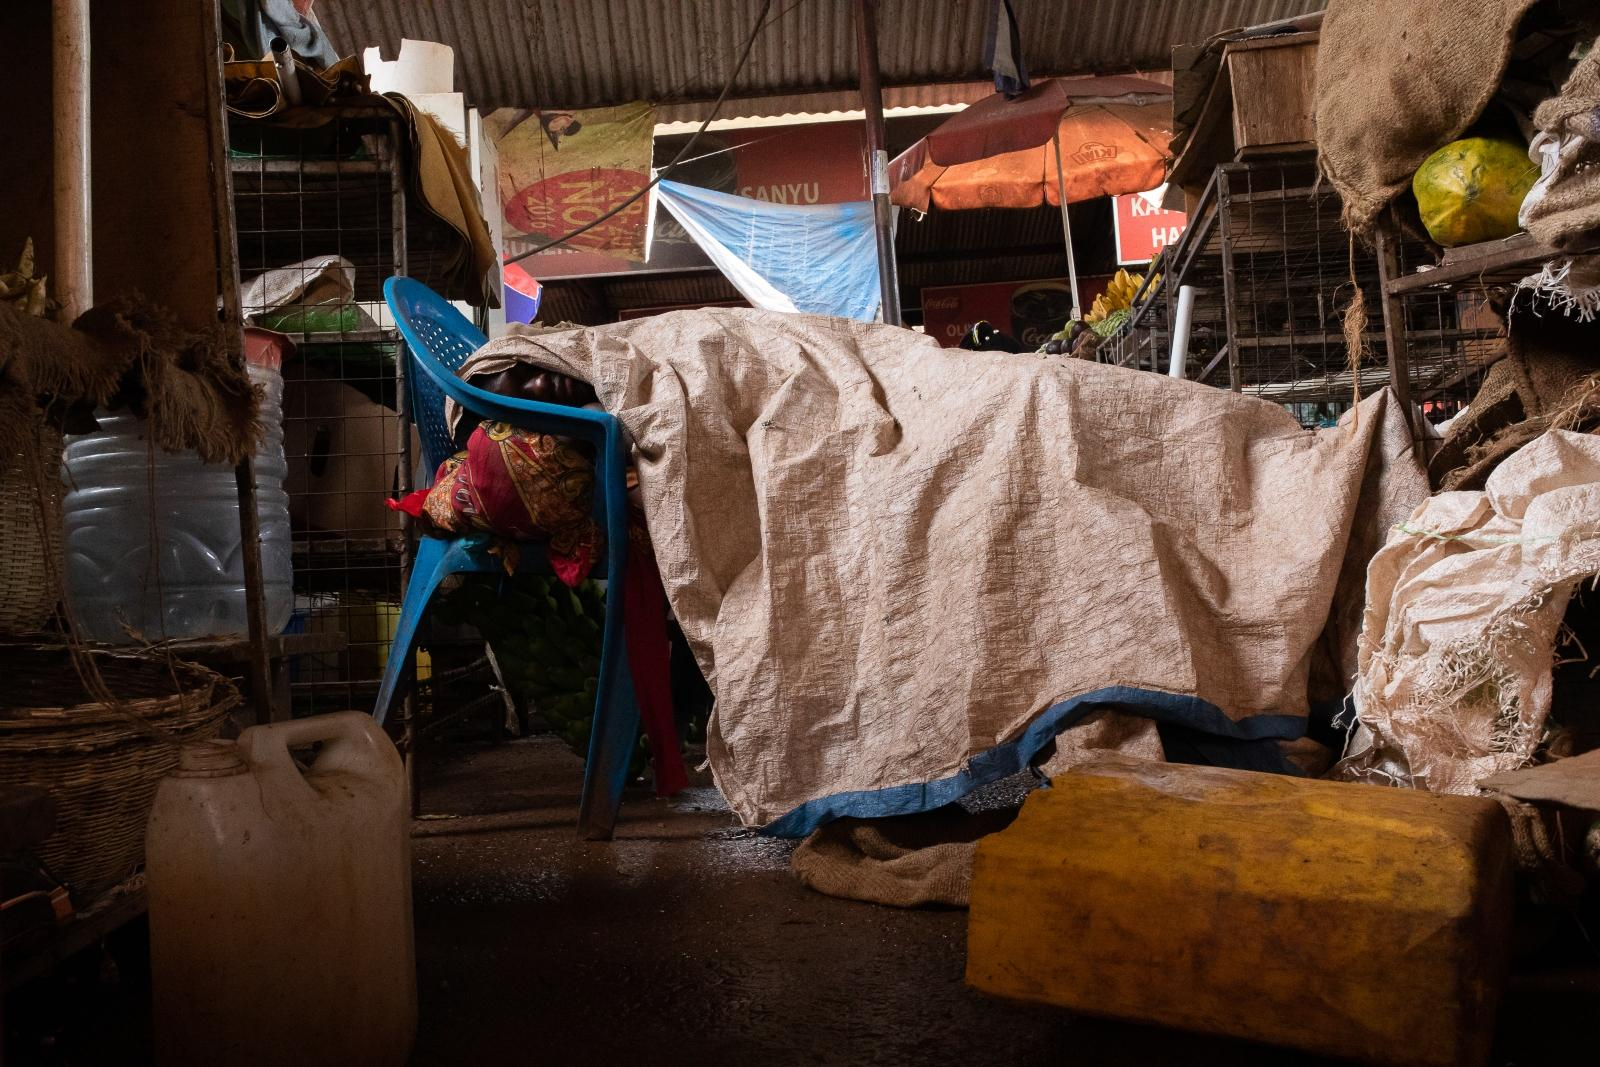 A man asleep under a tarpaulin